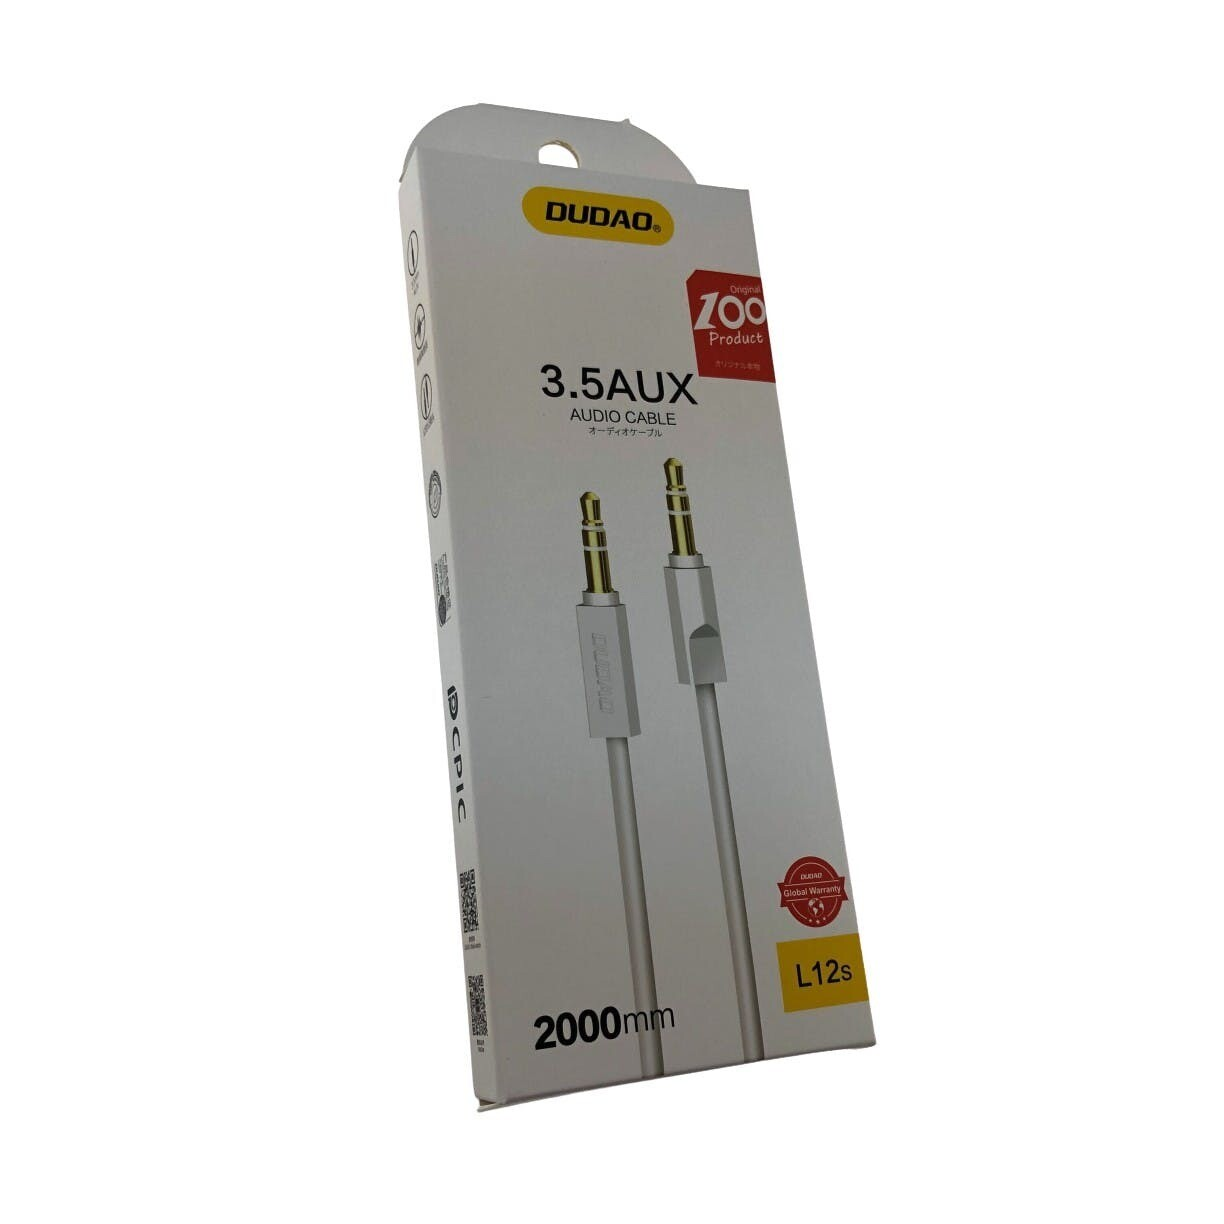 6 Feet Long Auxiliary Cable 3.5 to 3.5mm (in Packaging)